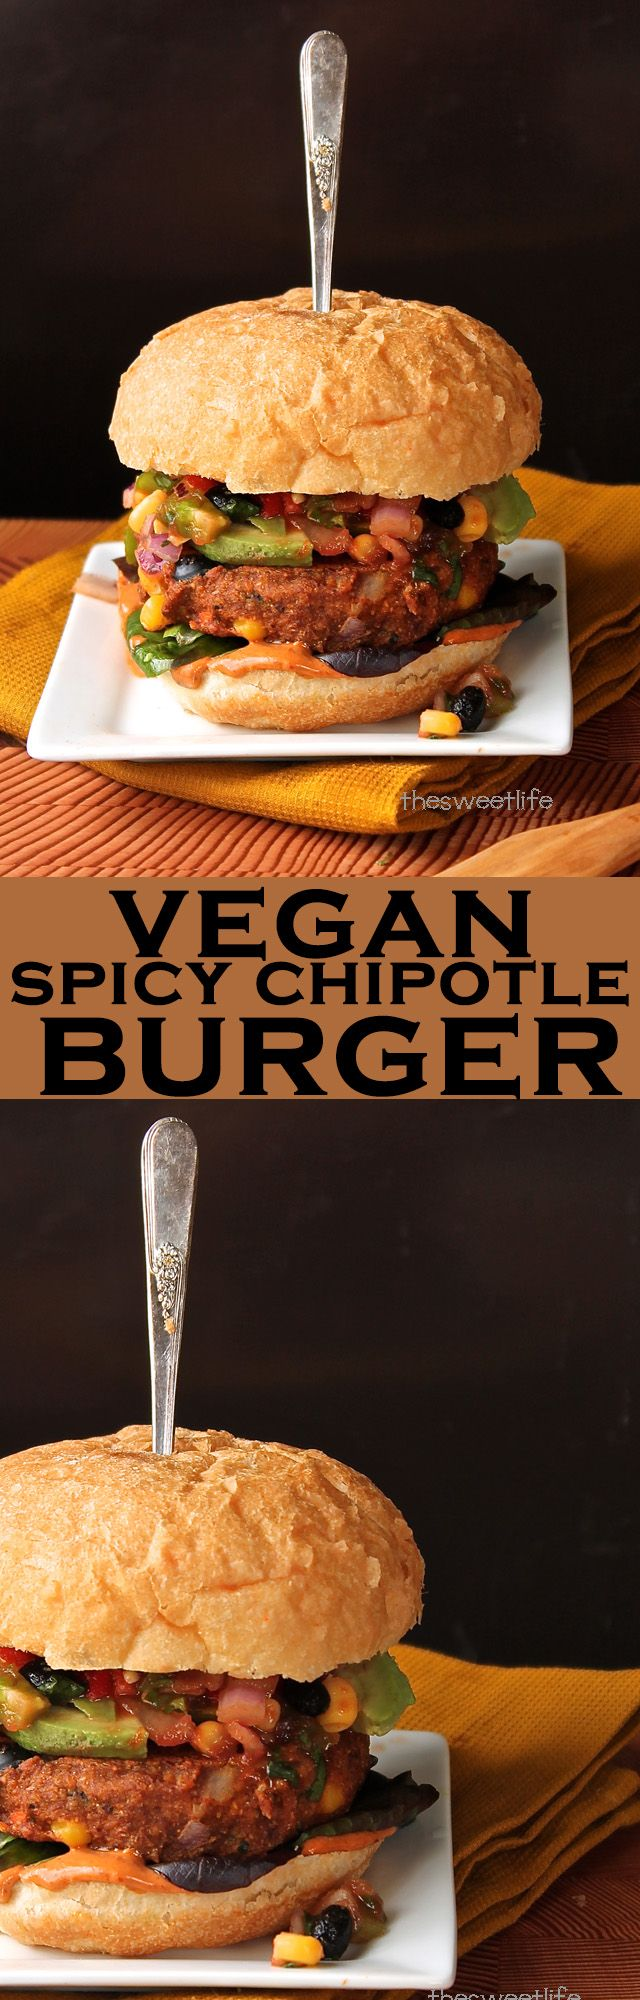 Bite into this incredible vegan Spicy Chipotle Burger with pico de gallo and special sauce. Click the photo for the full recipe!